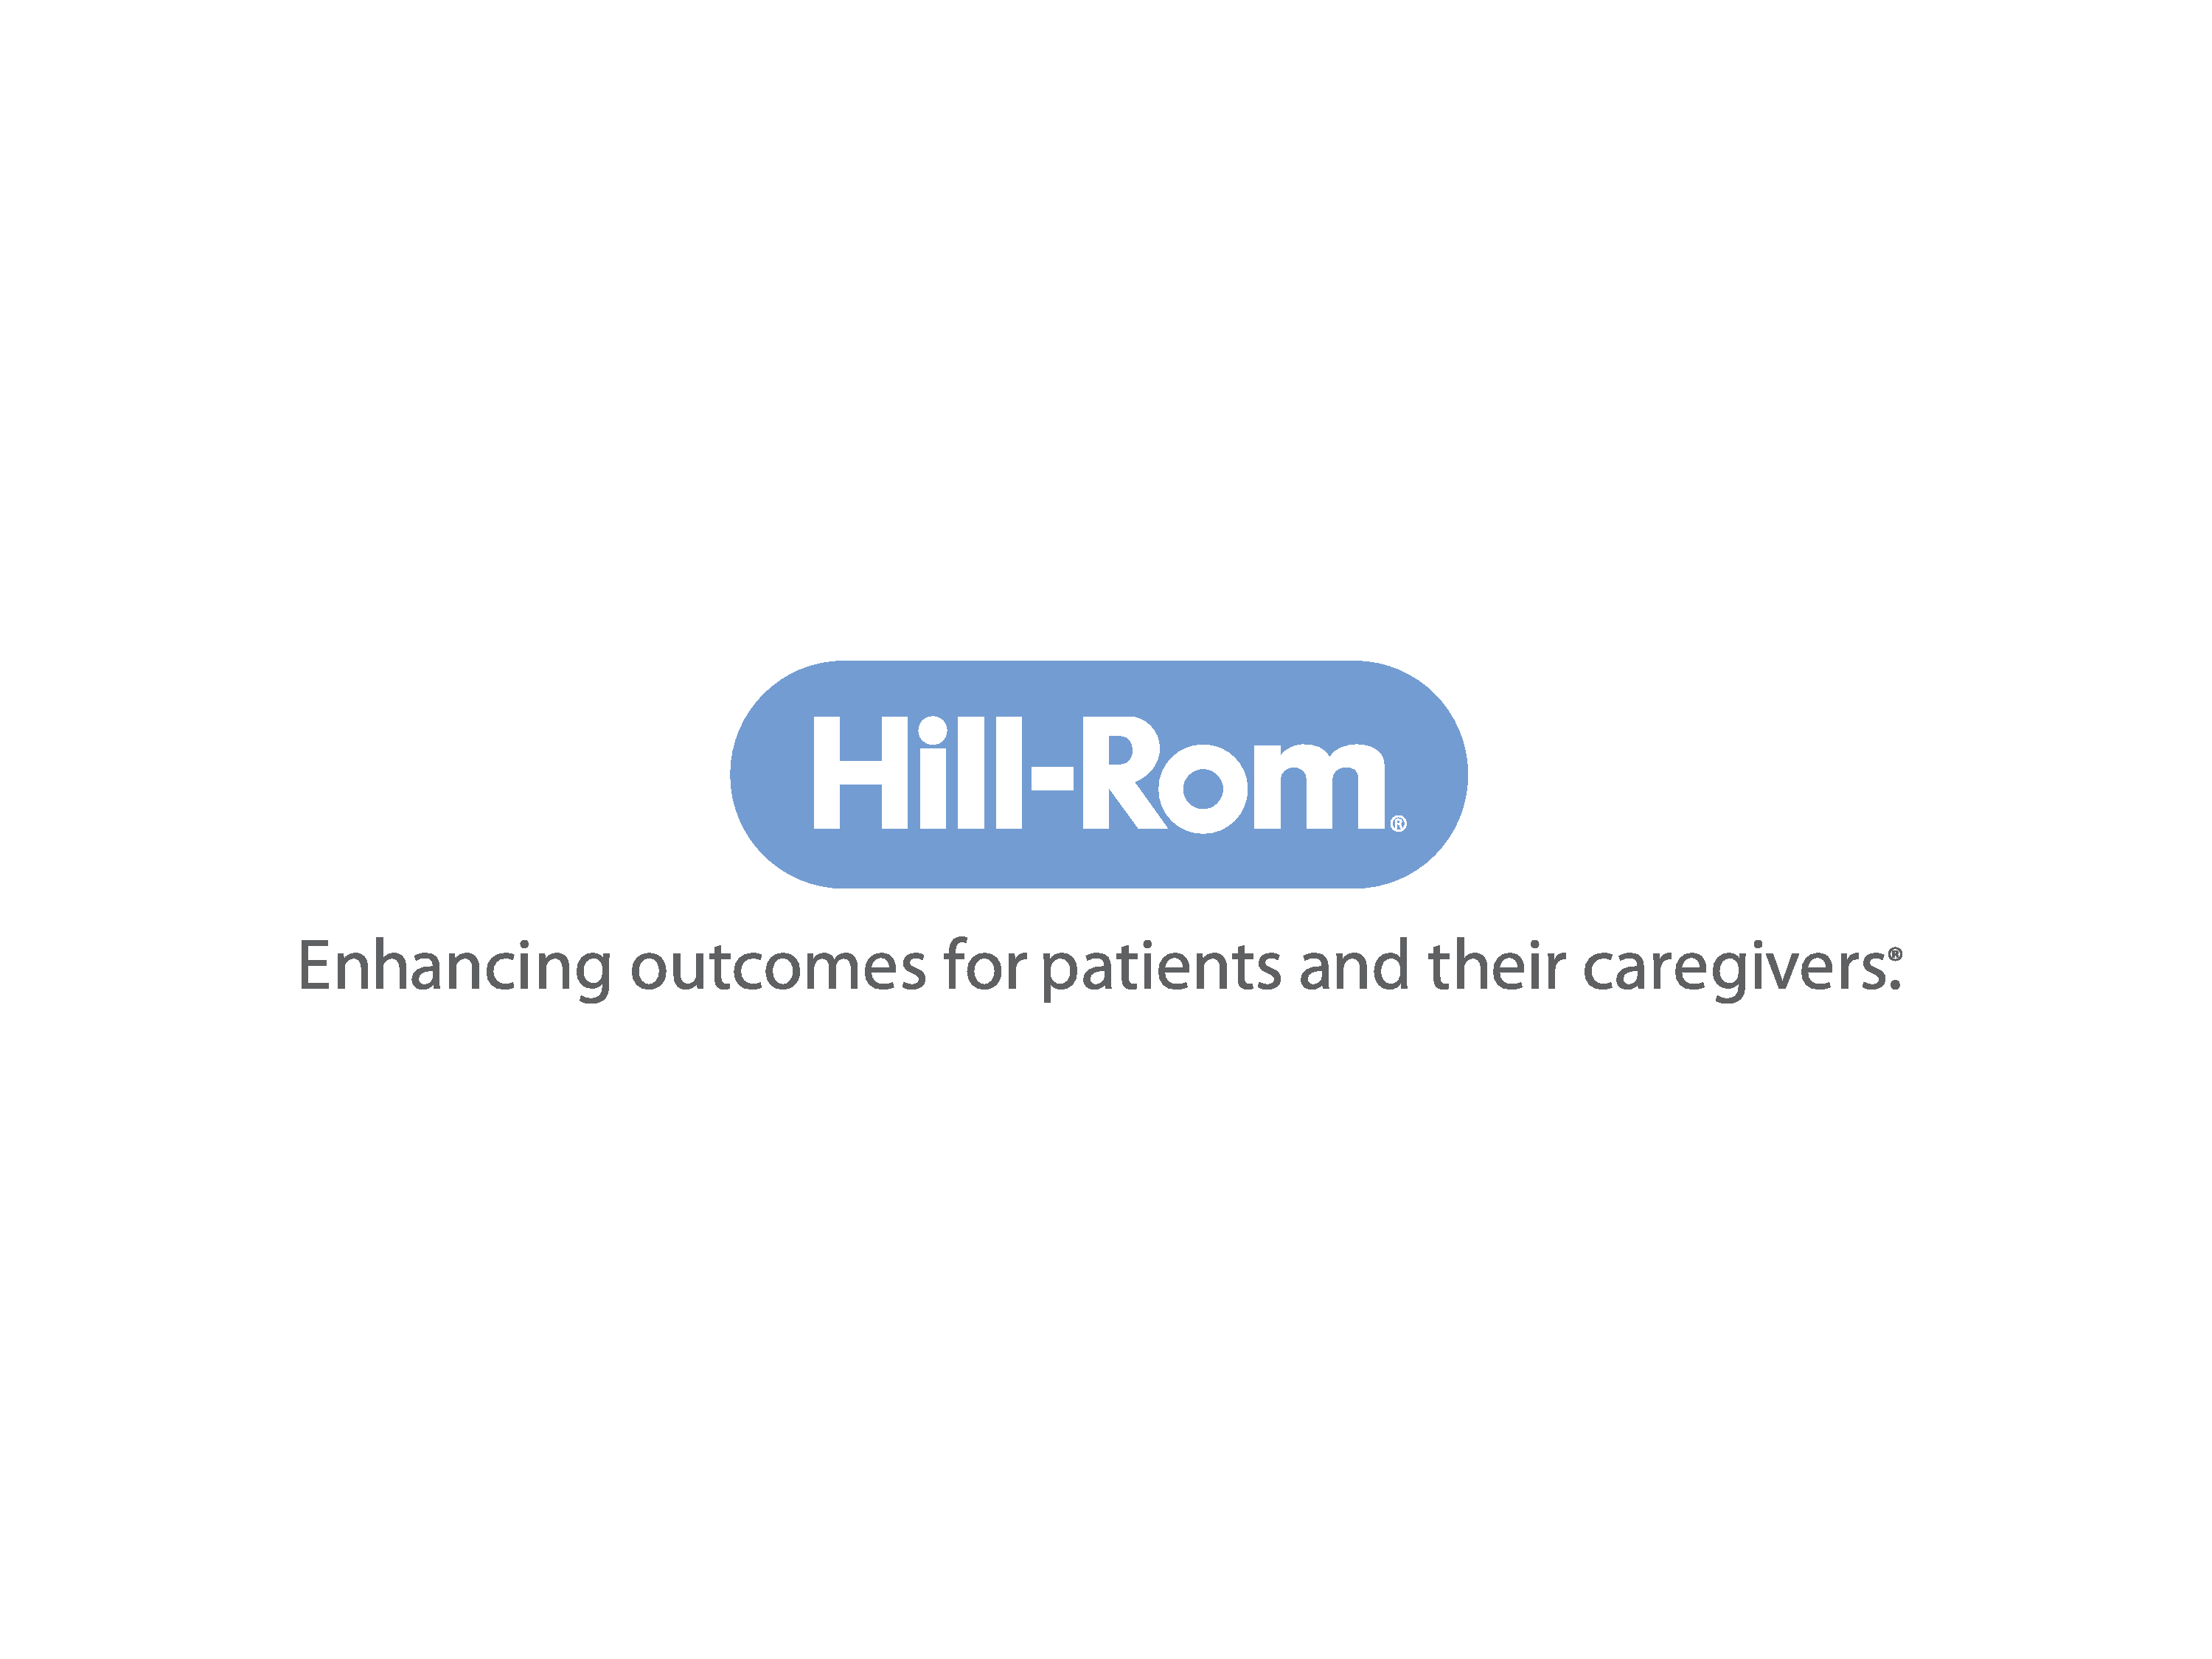 Interactive Hill-Rom Marketing Project